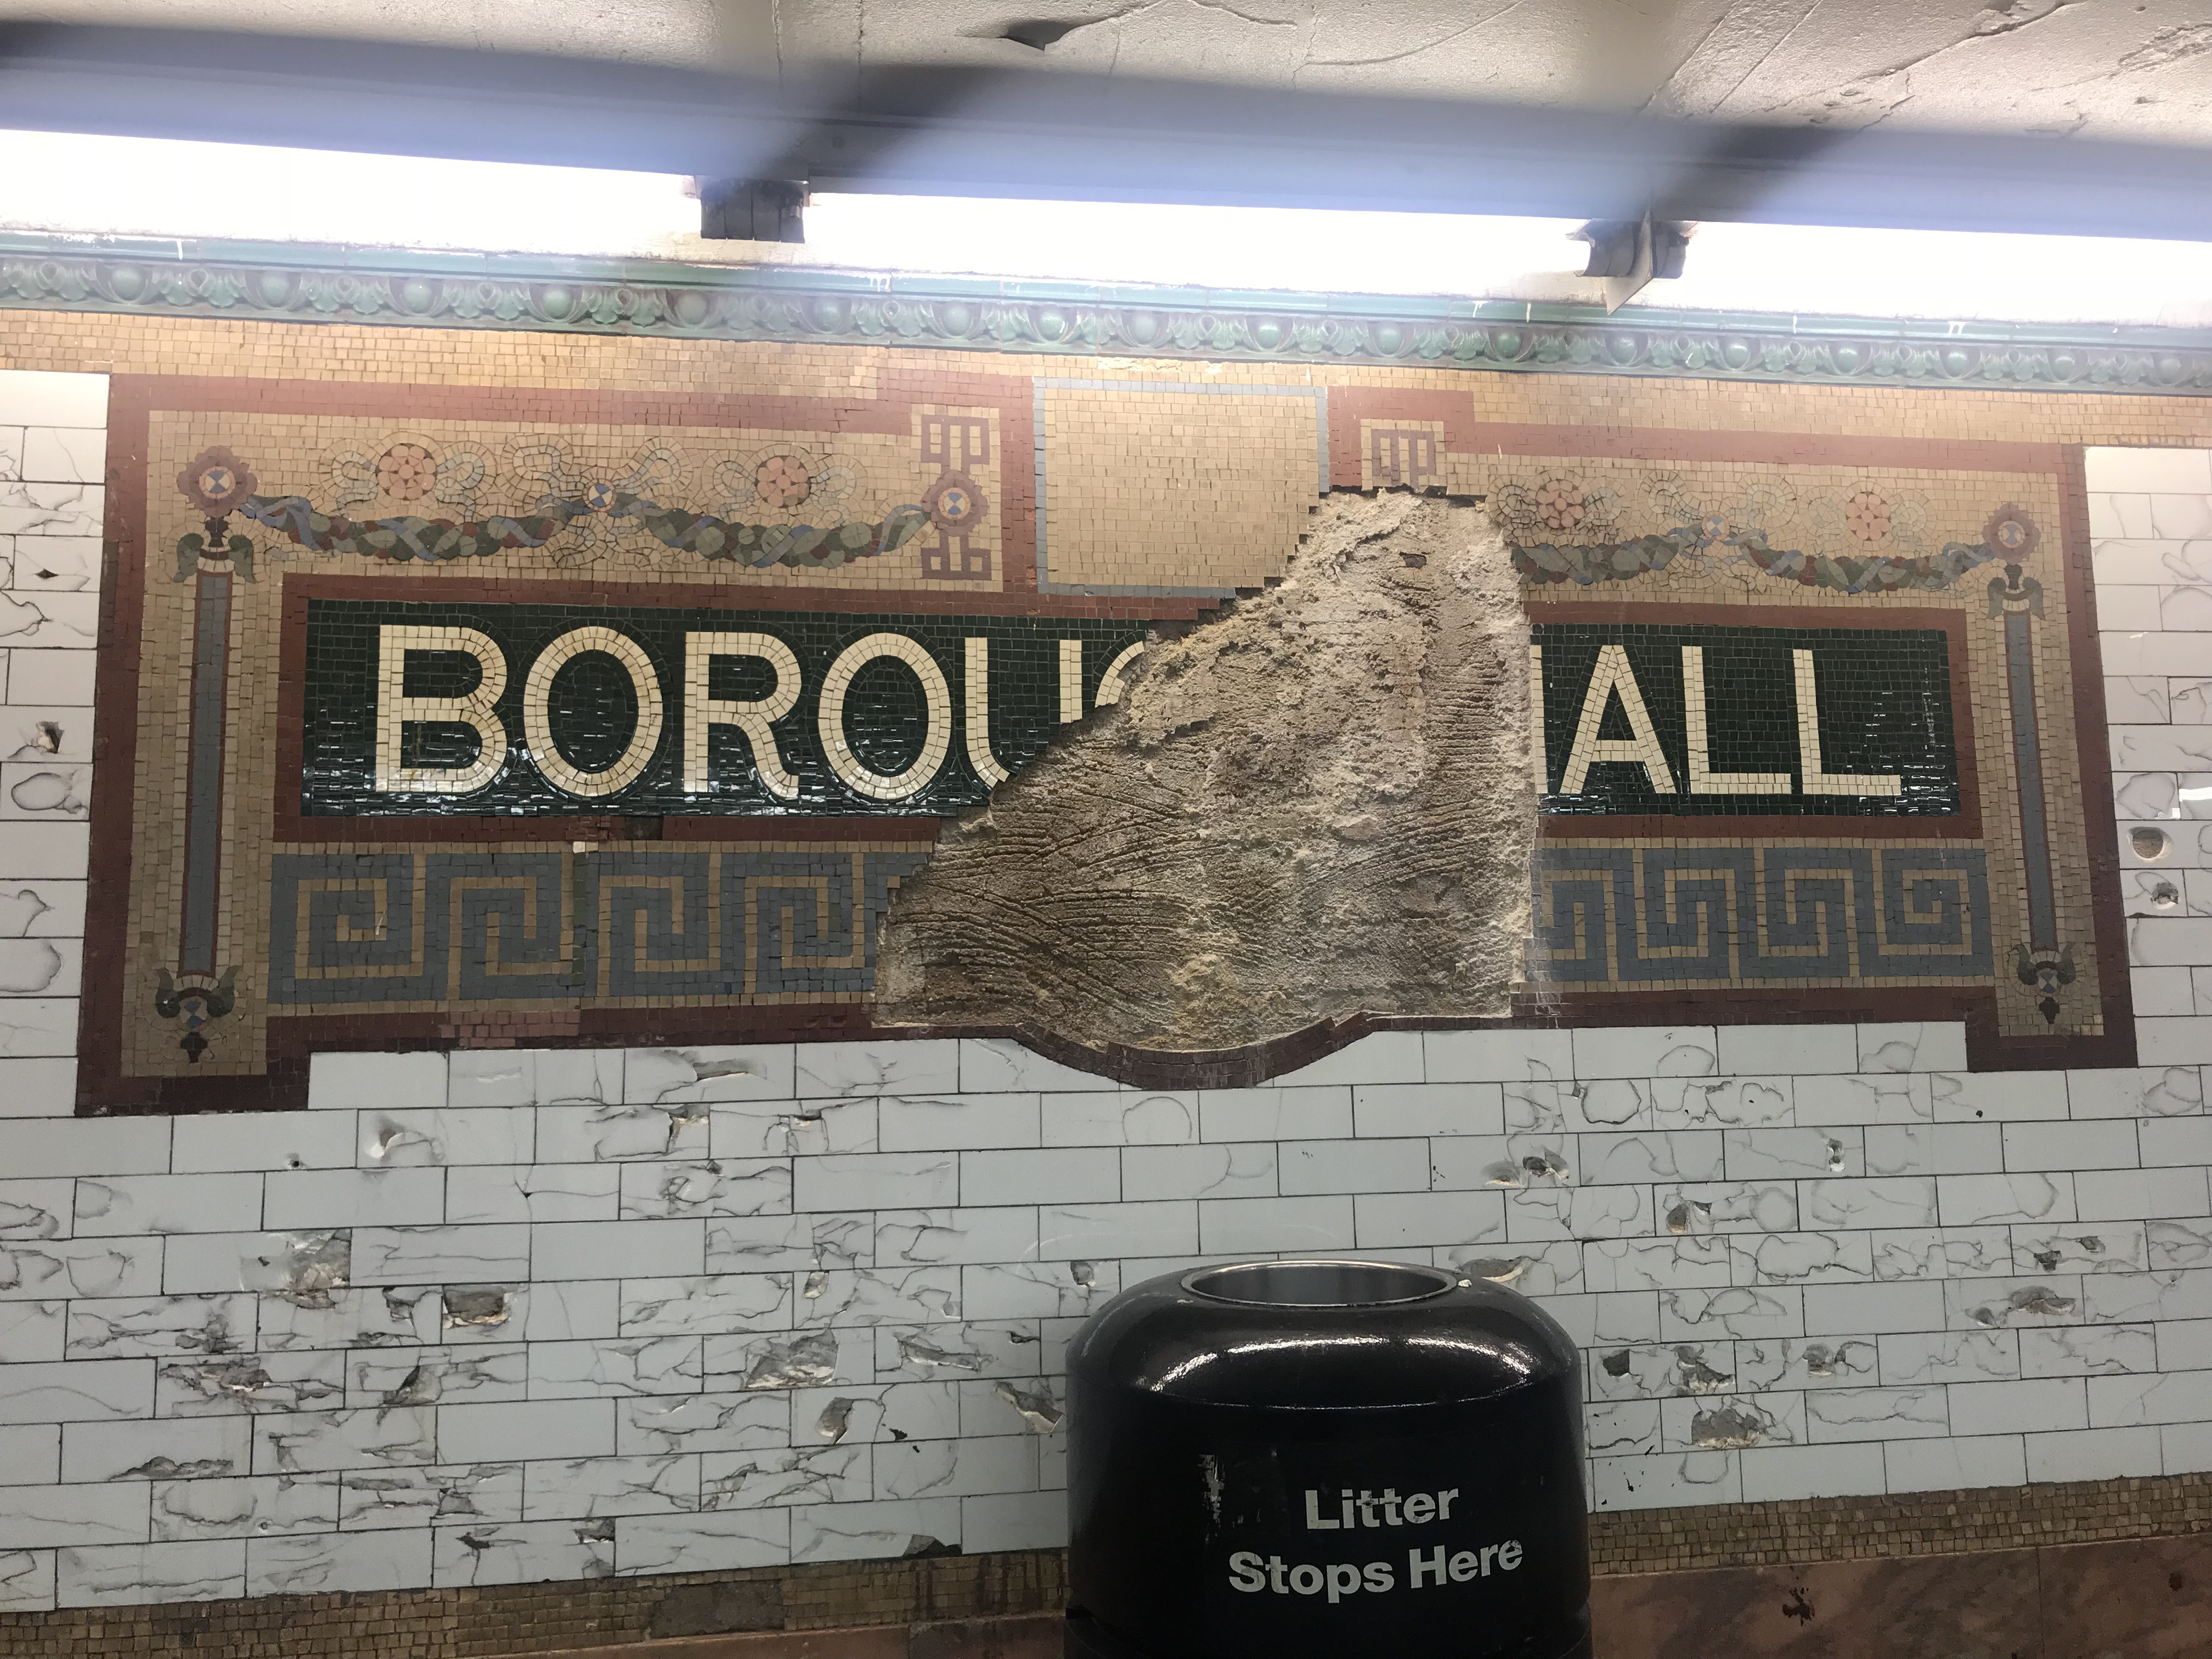 The Borough Hall Subway Station Is Literally Collapsing